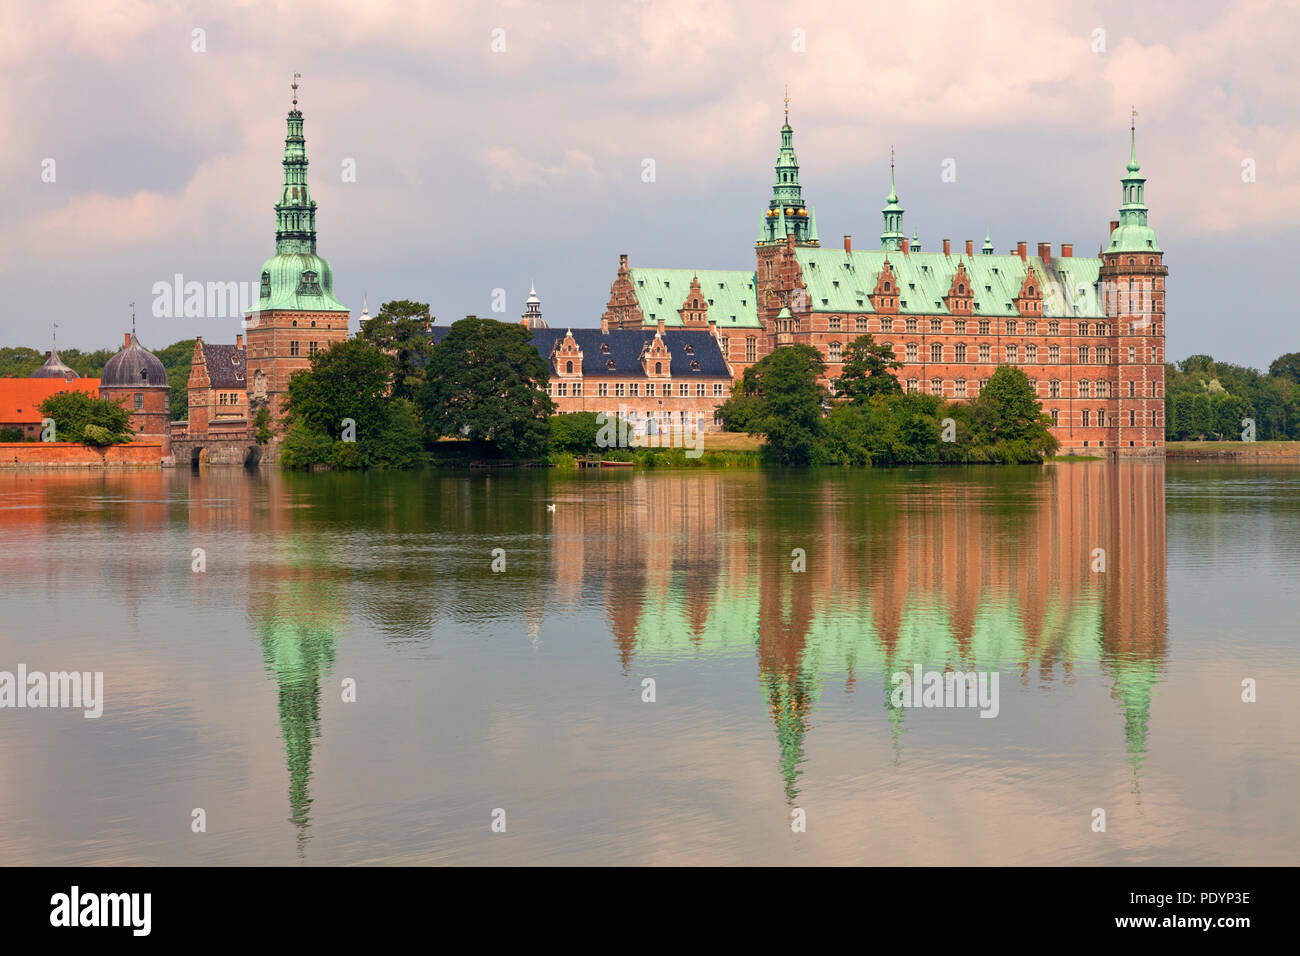 Frederiksborg Castle seen from the opposite bank of the Castle Lake Stock Photo